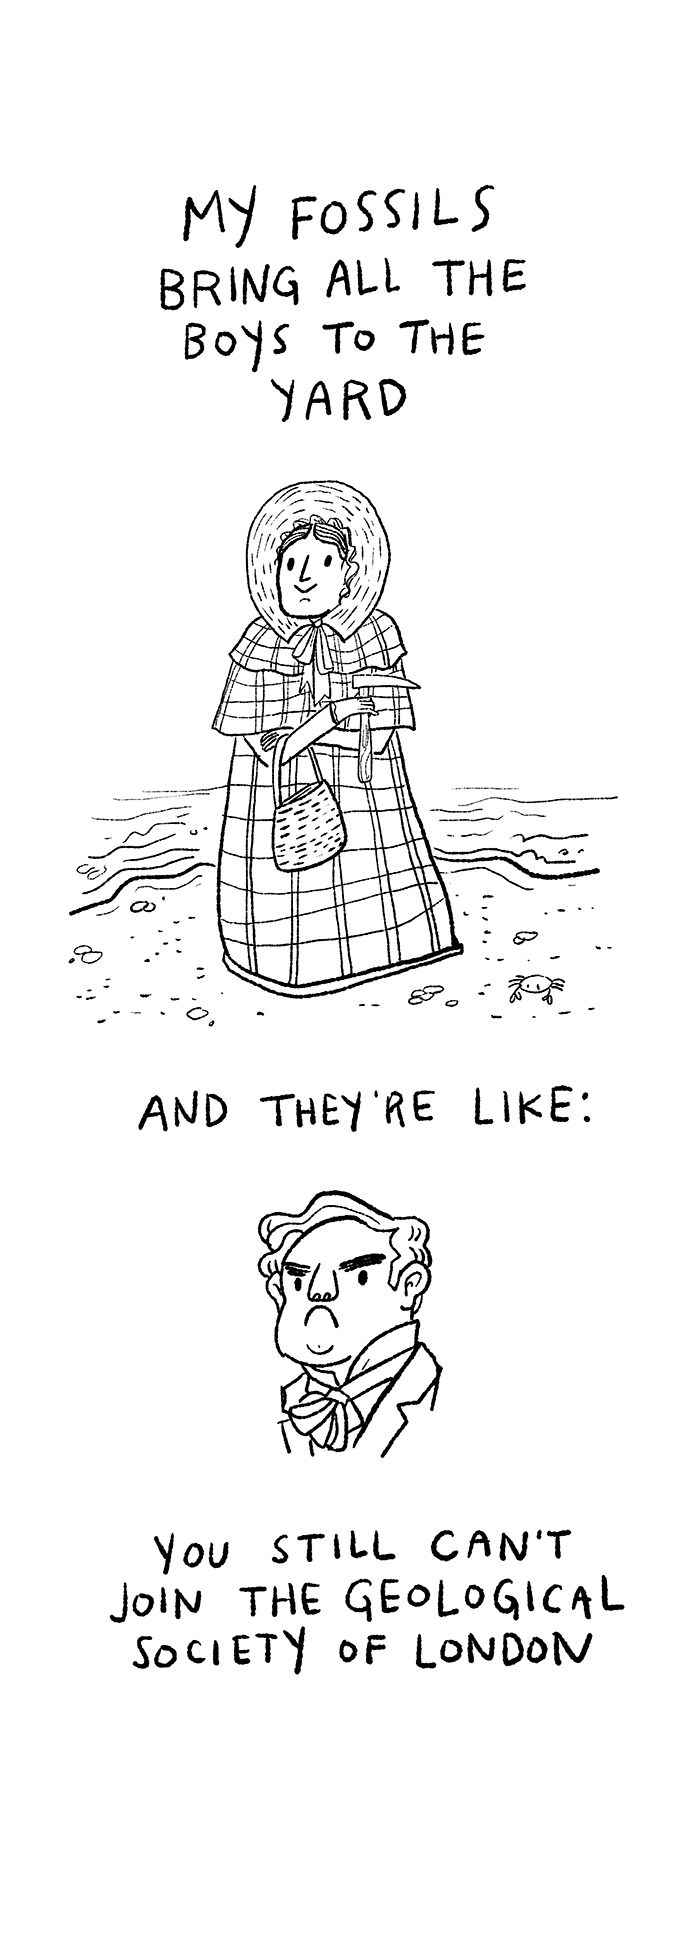 Mary Anning Cartoon by Kate Beaton